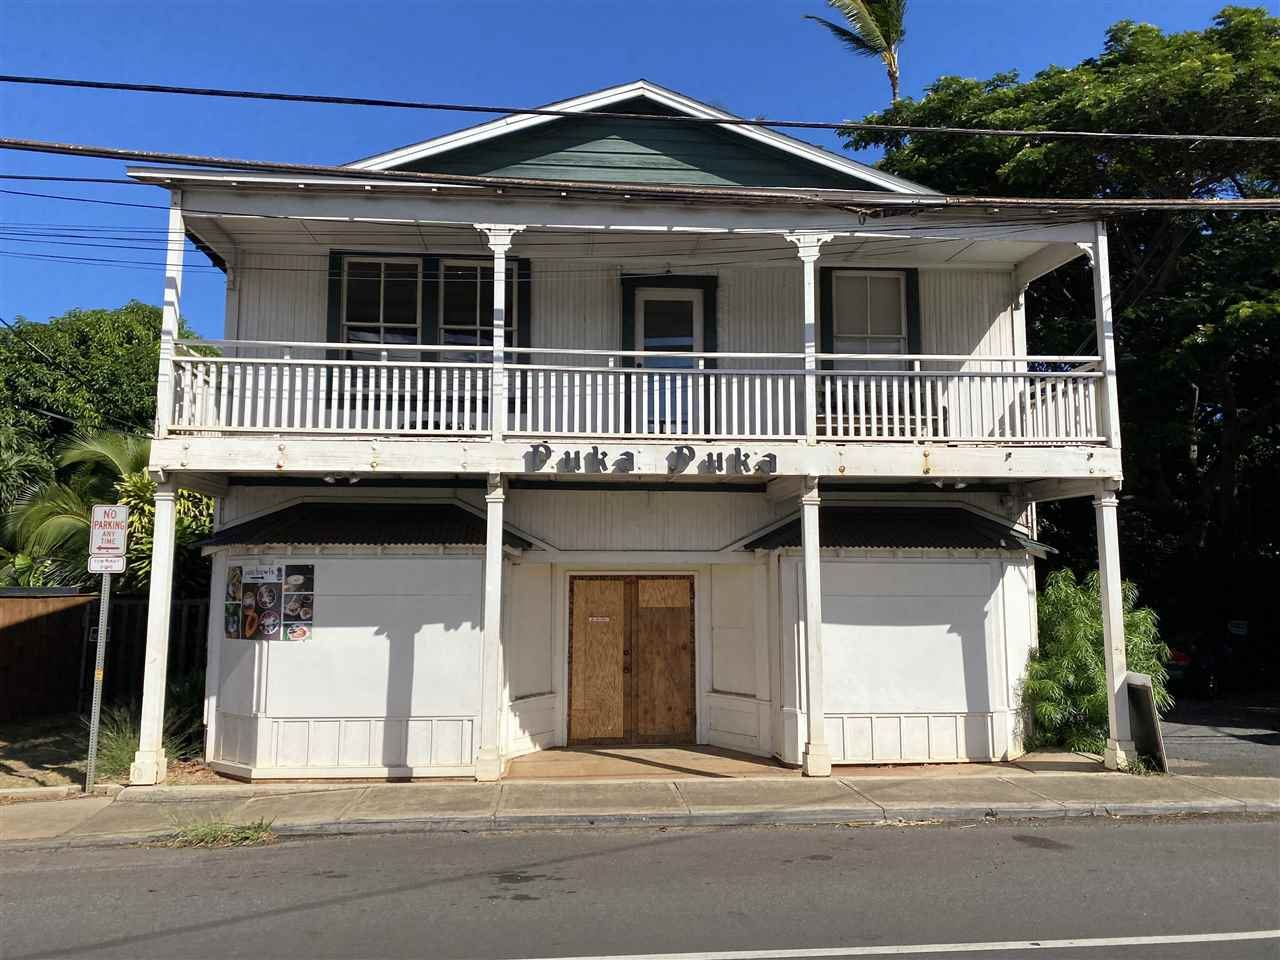 Photo of 43 Hana Hwy, Paia, HI 96779 (MLS # 389101)